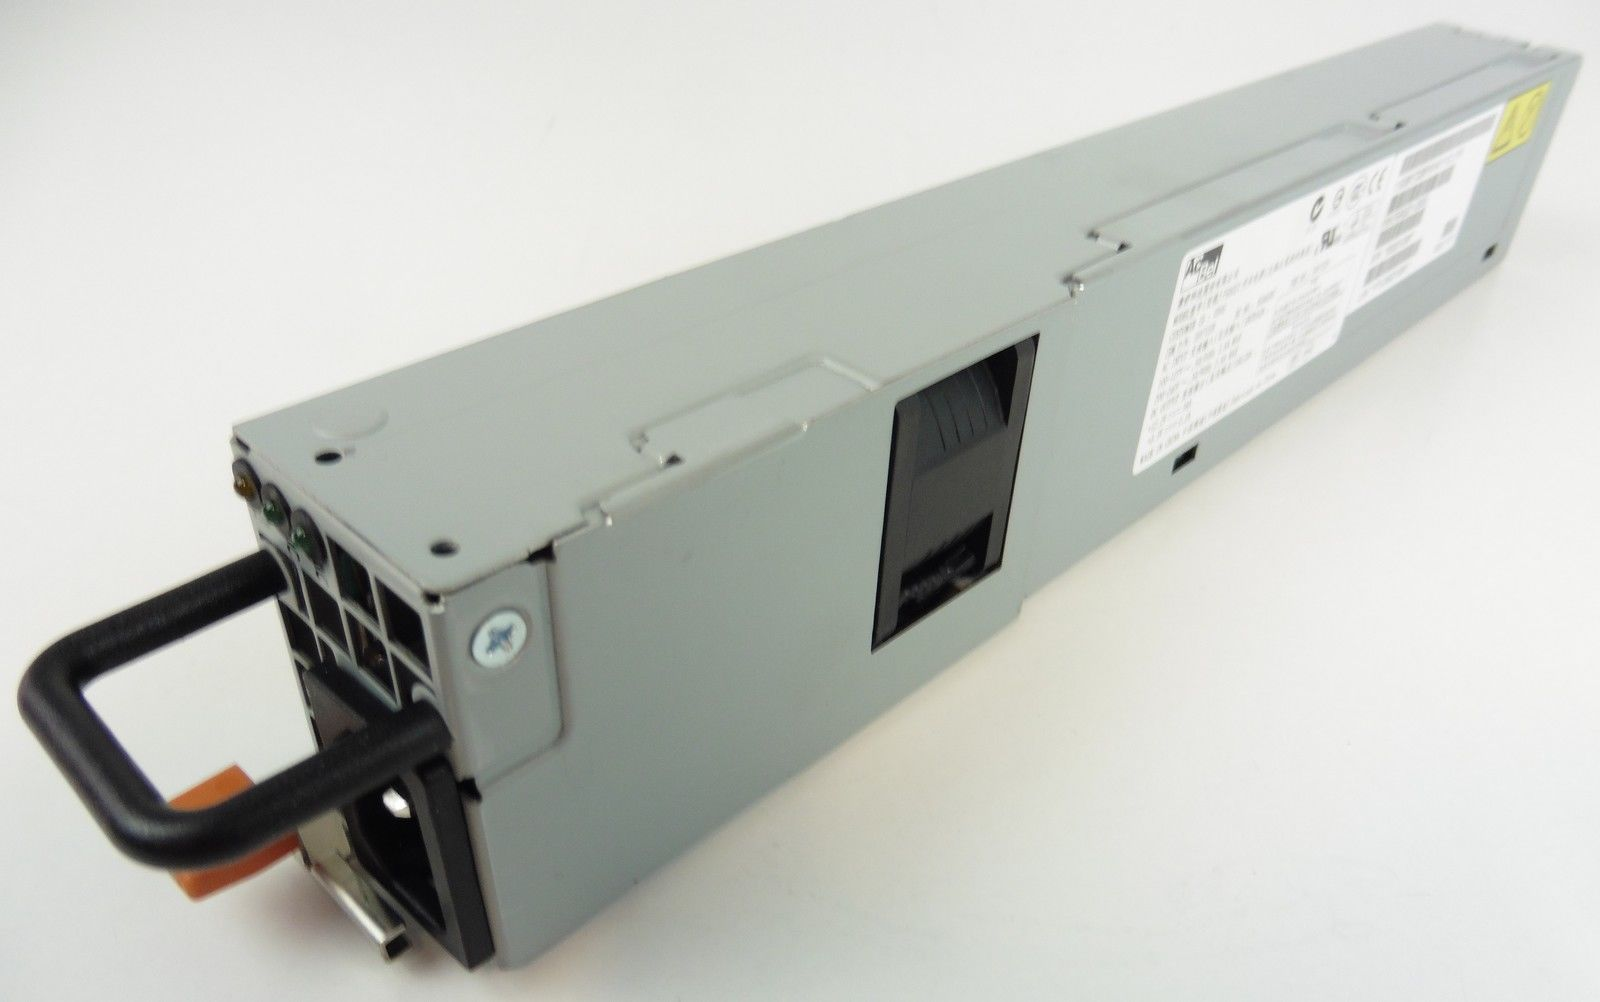 IBM 460 W Power Supply For x3650 M3 39Y7229